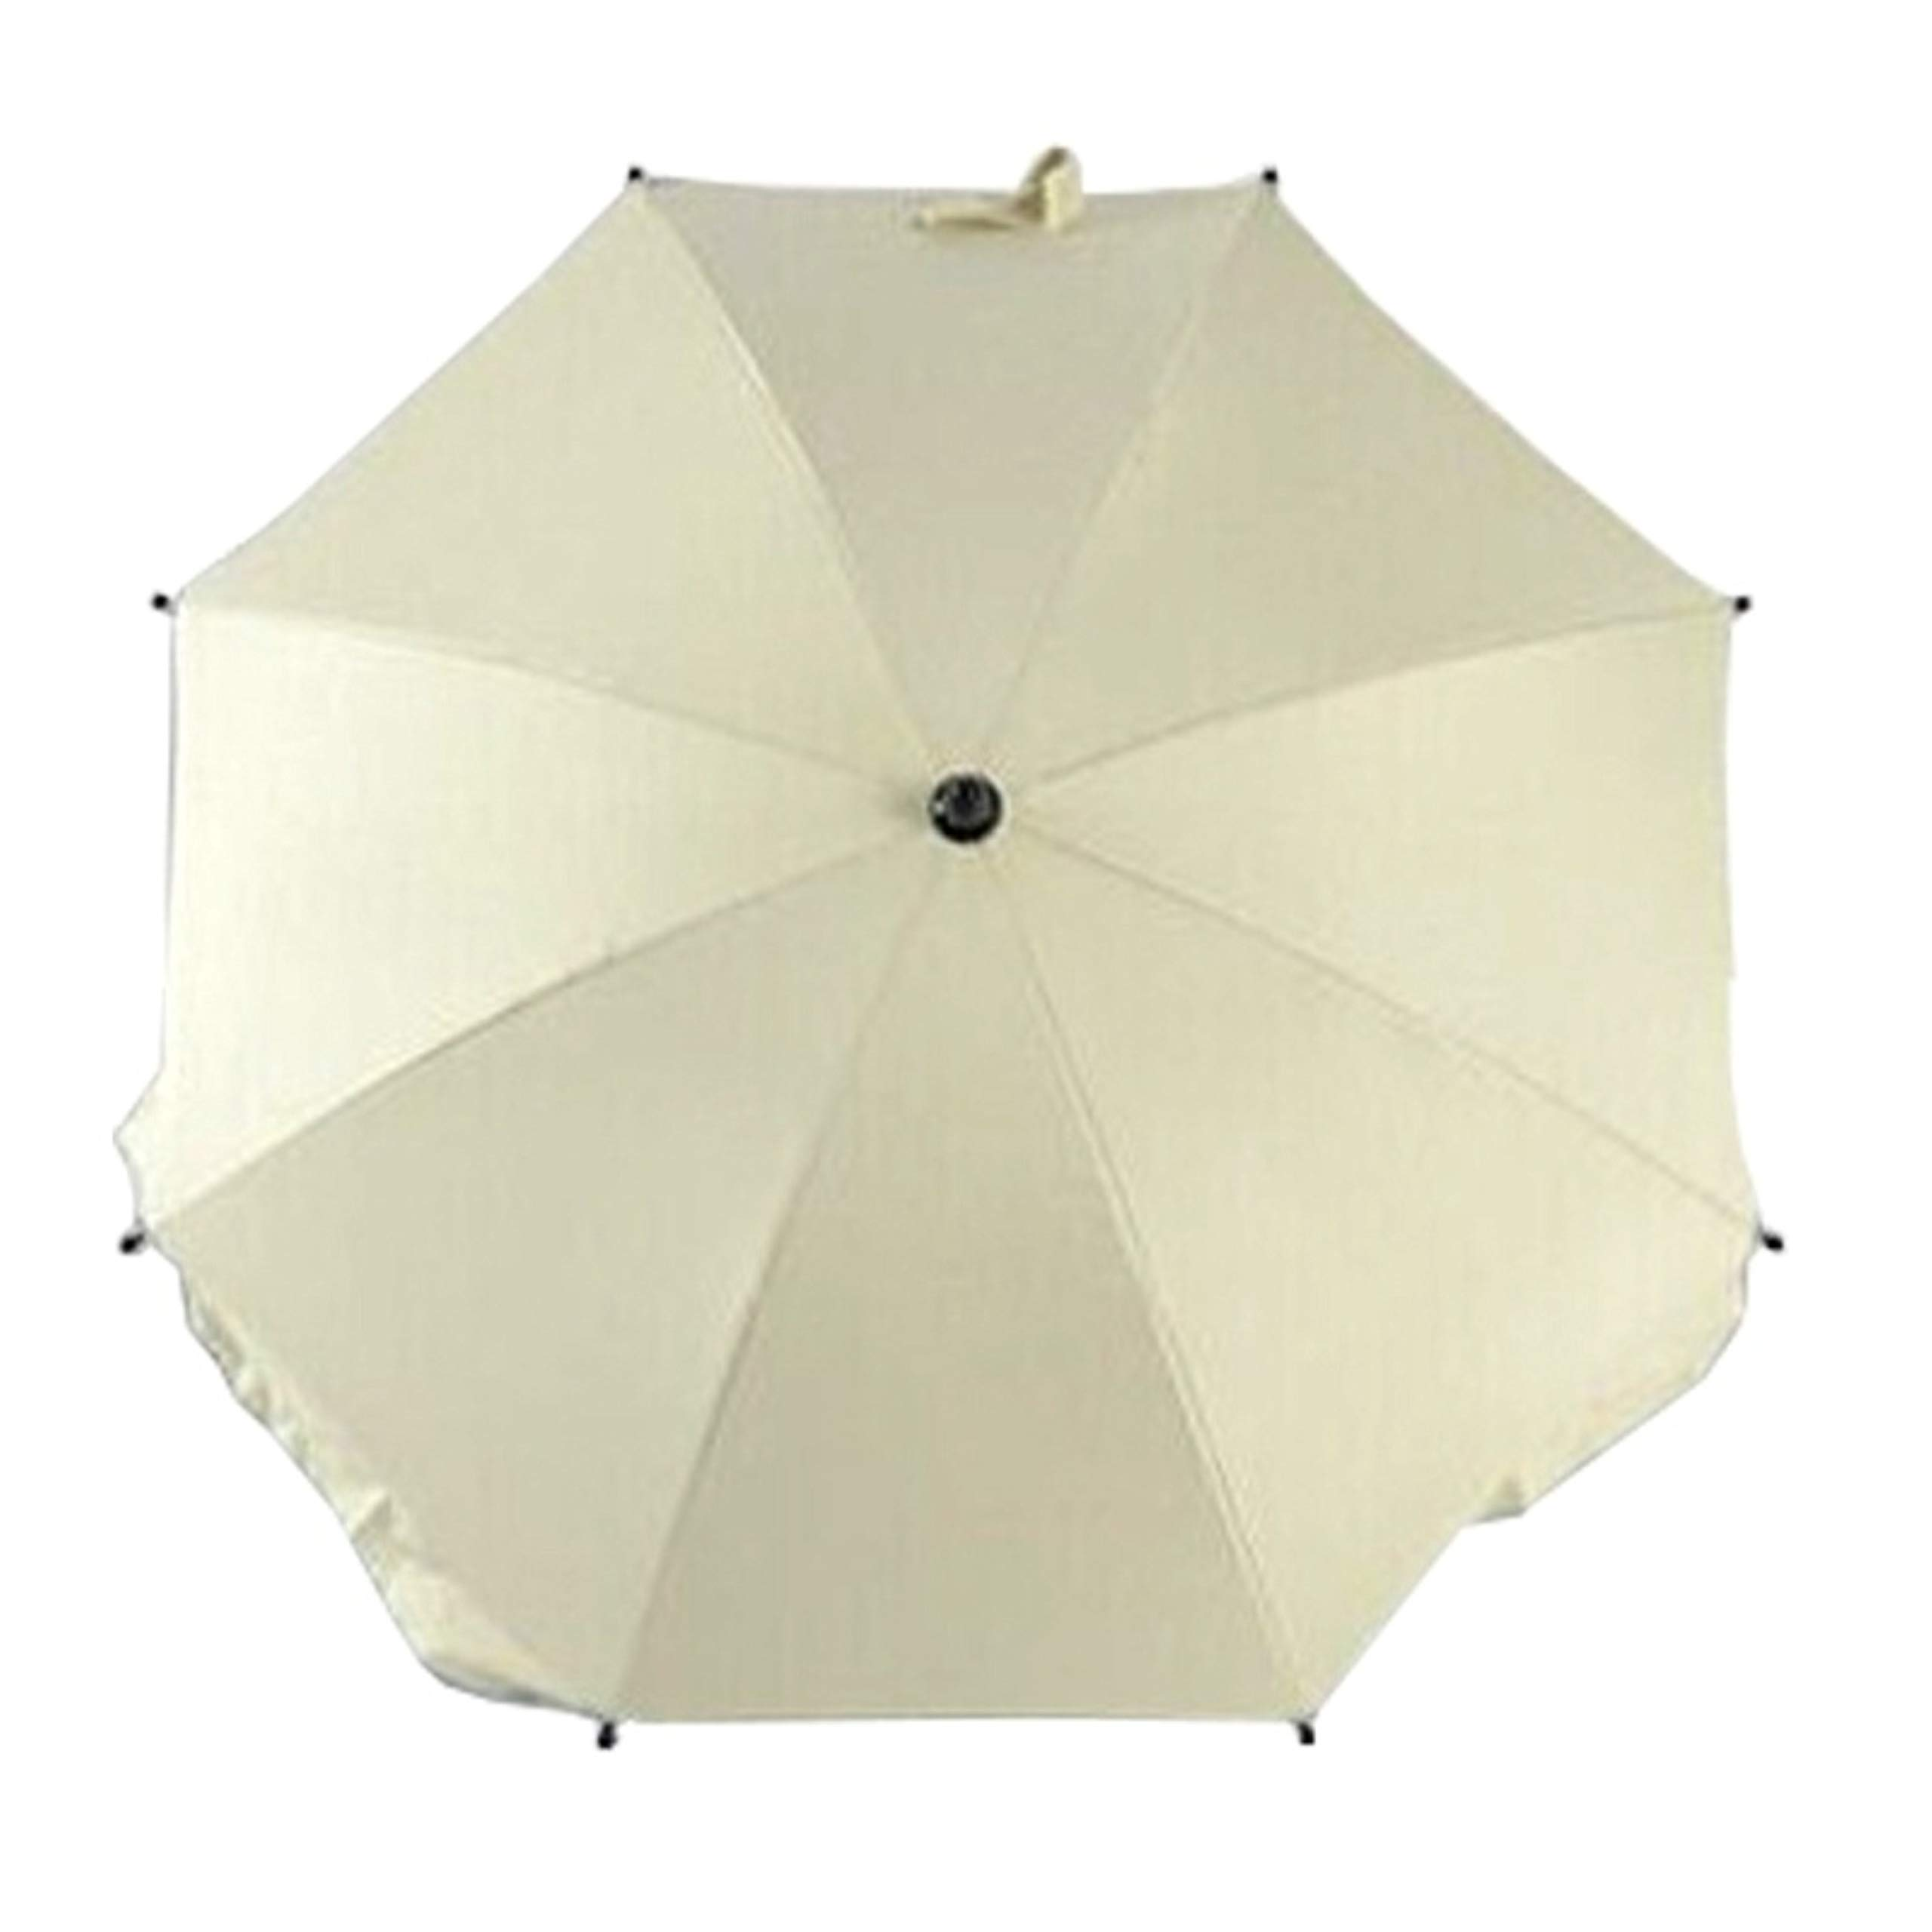 Adjustable Umbrella for Golf Carts, Baby Strollers/Prams and Wheelchairs to Provide Protection from Rain and The Sun(White)